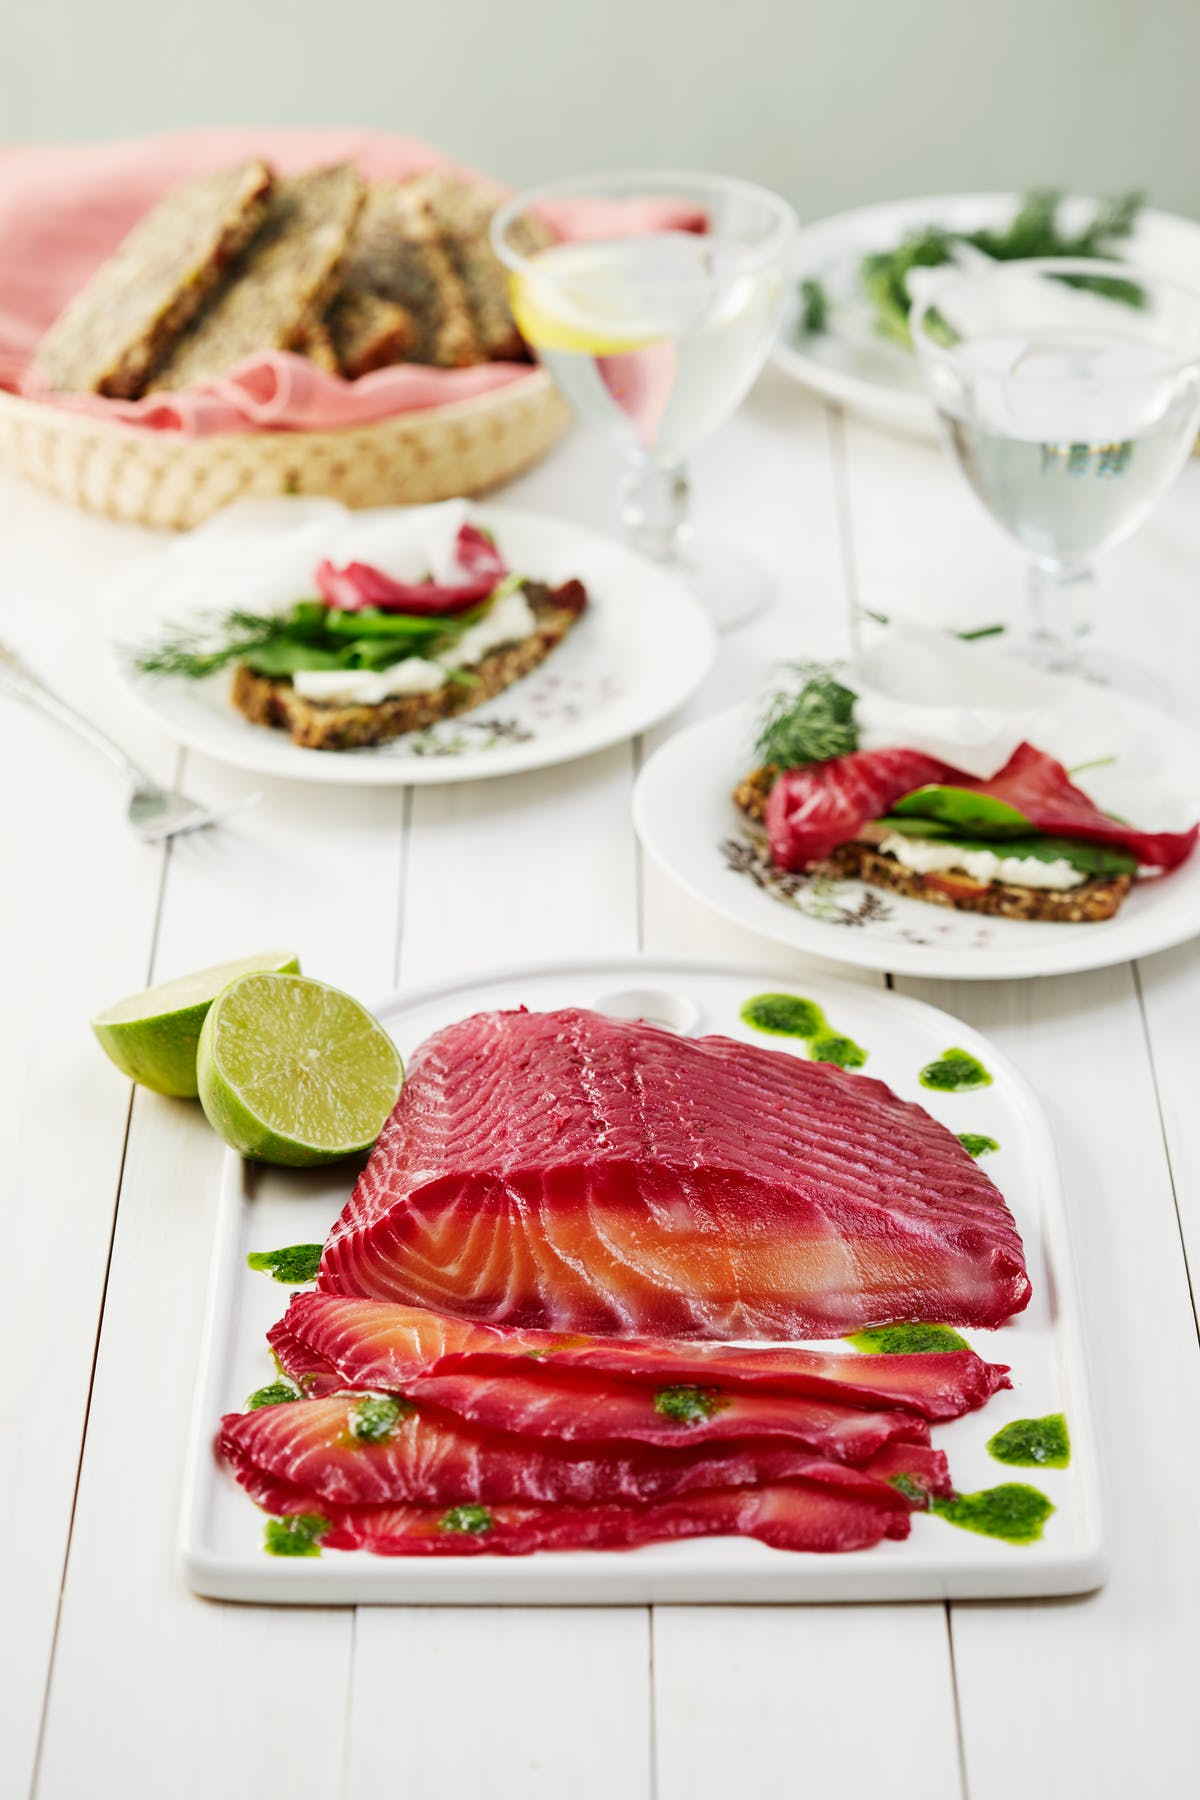 Beetroot-cured salmon with dill oil